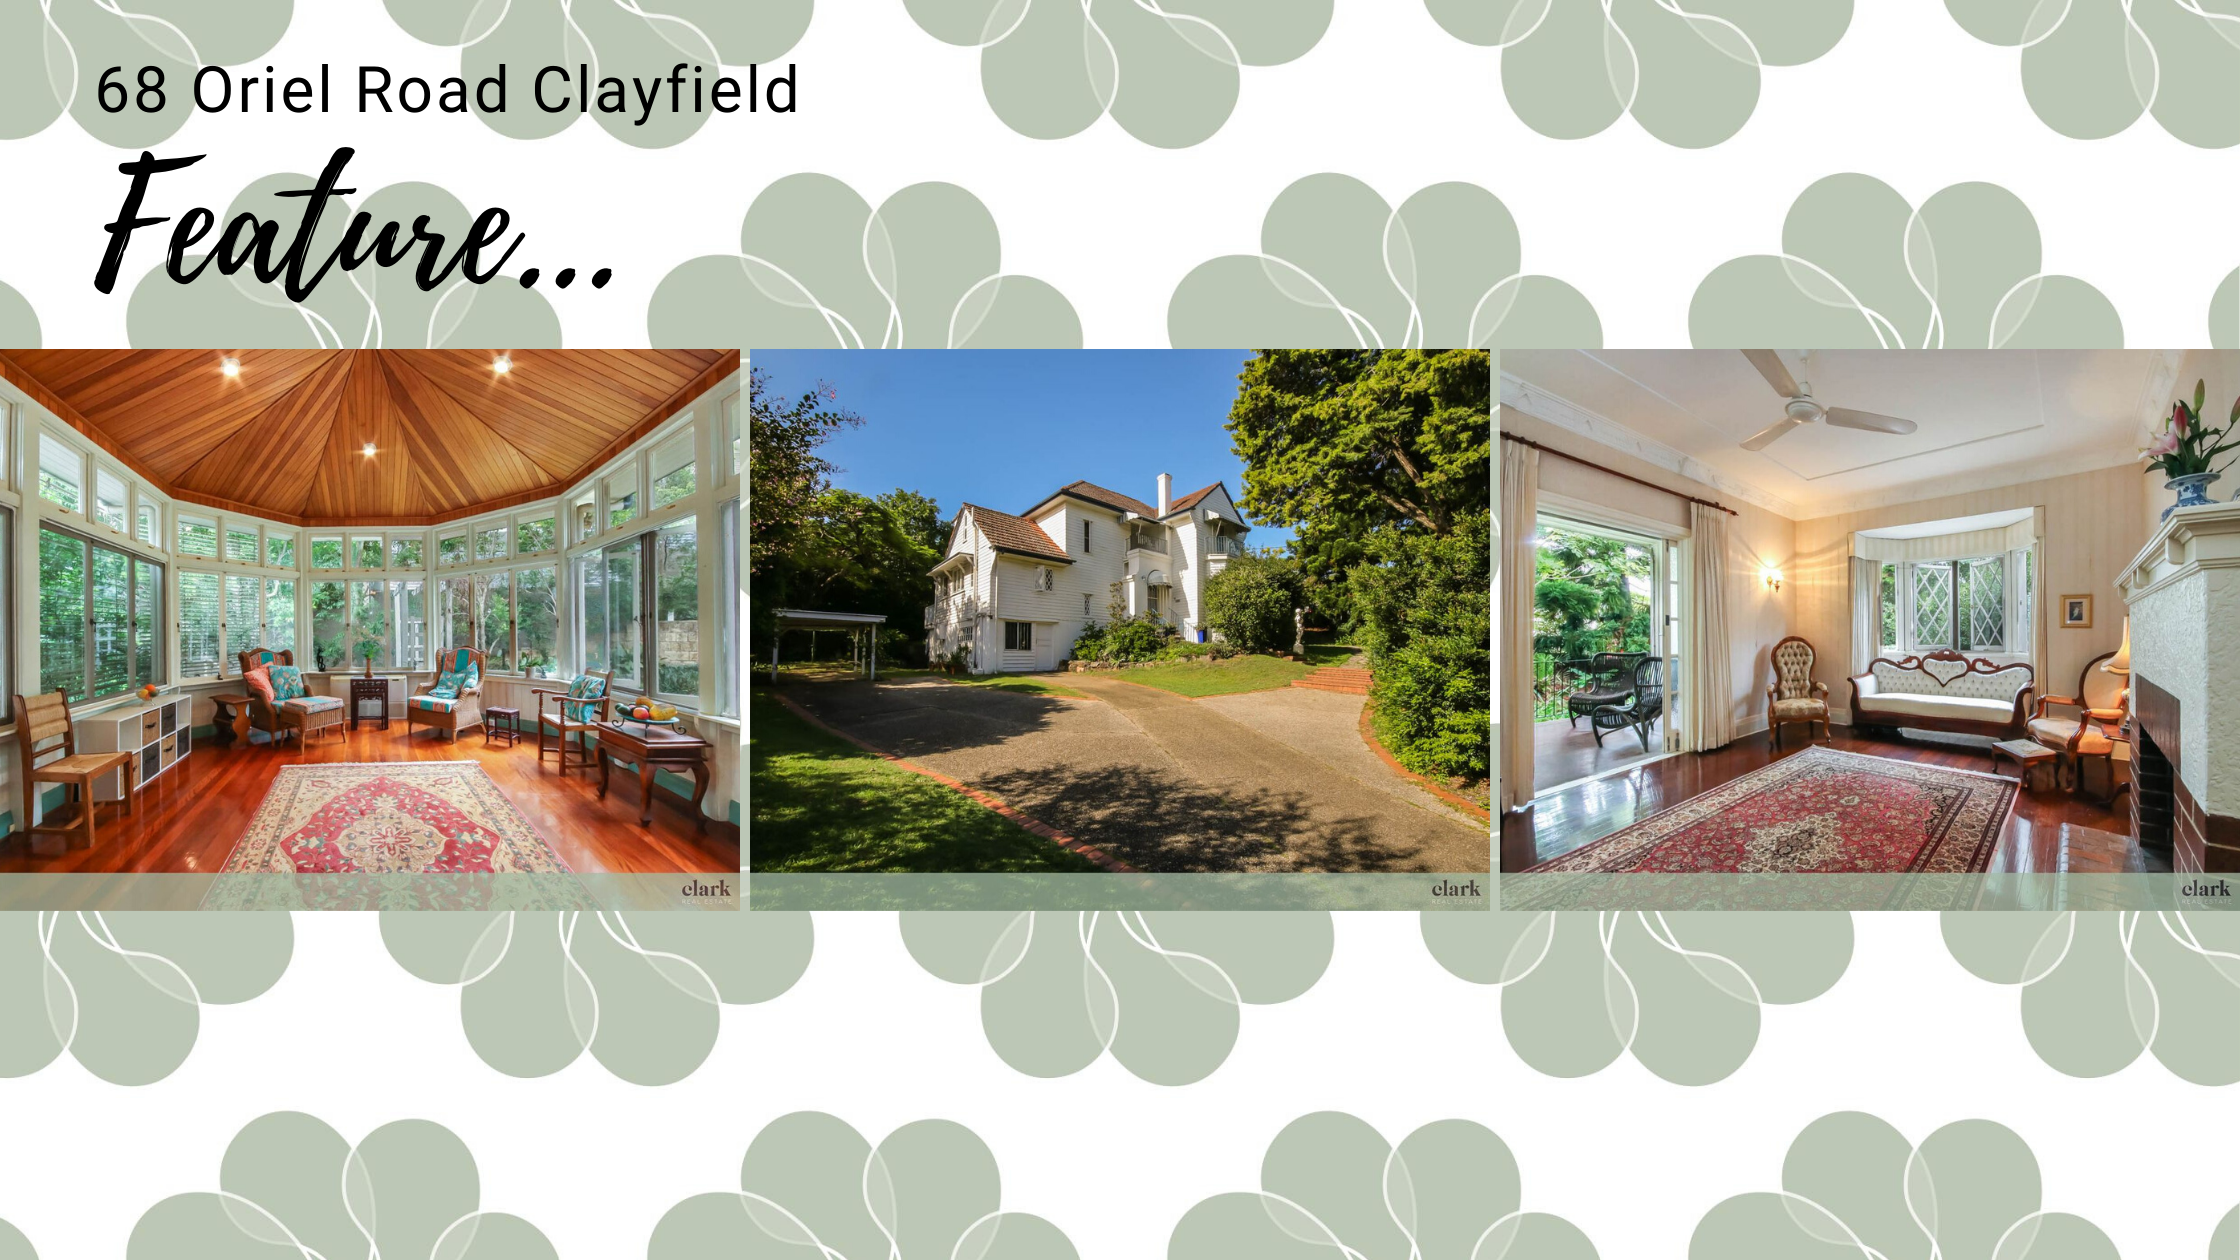 68 ORIEL ROAD, CLAYFIELD SOLD AFTER BEING OWNED FOR 38 YEARS!